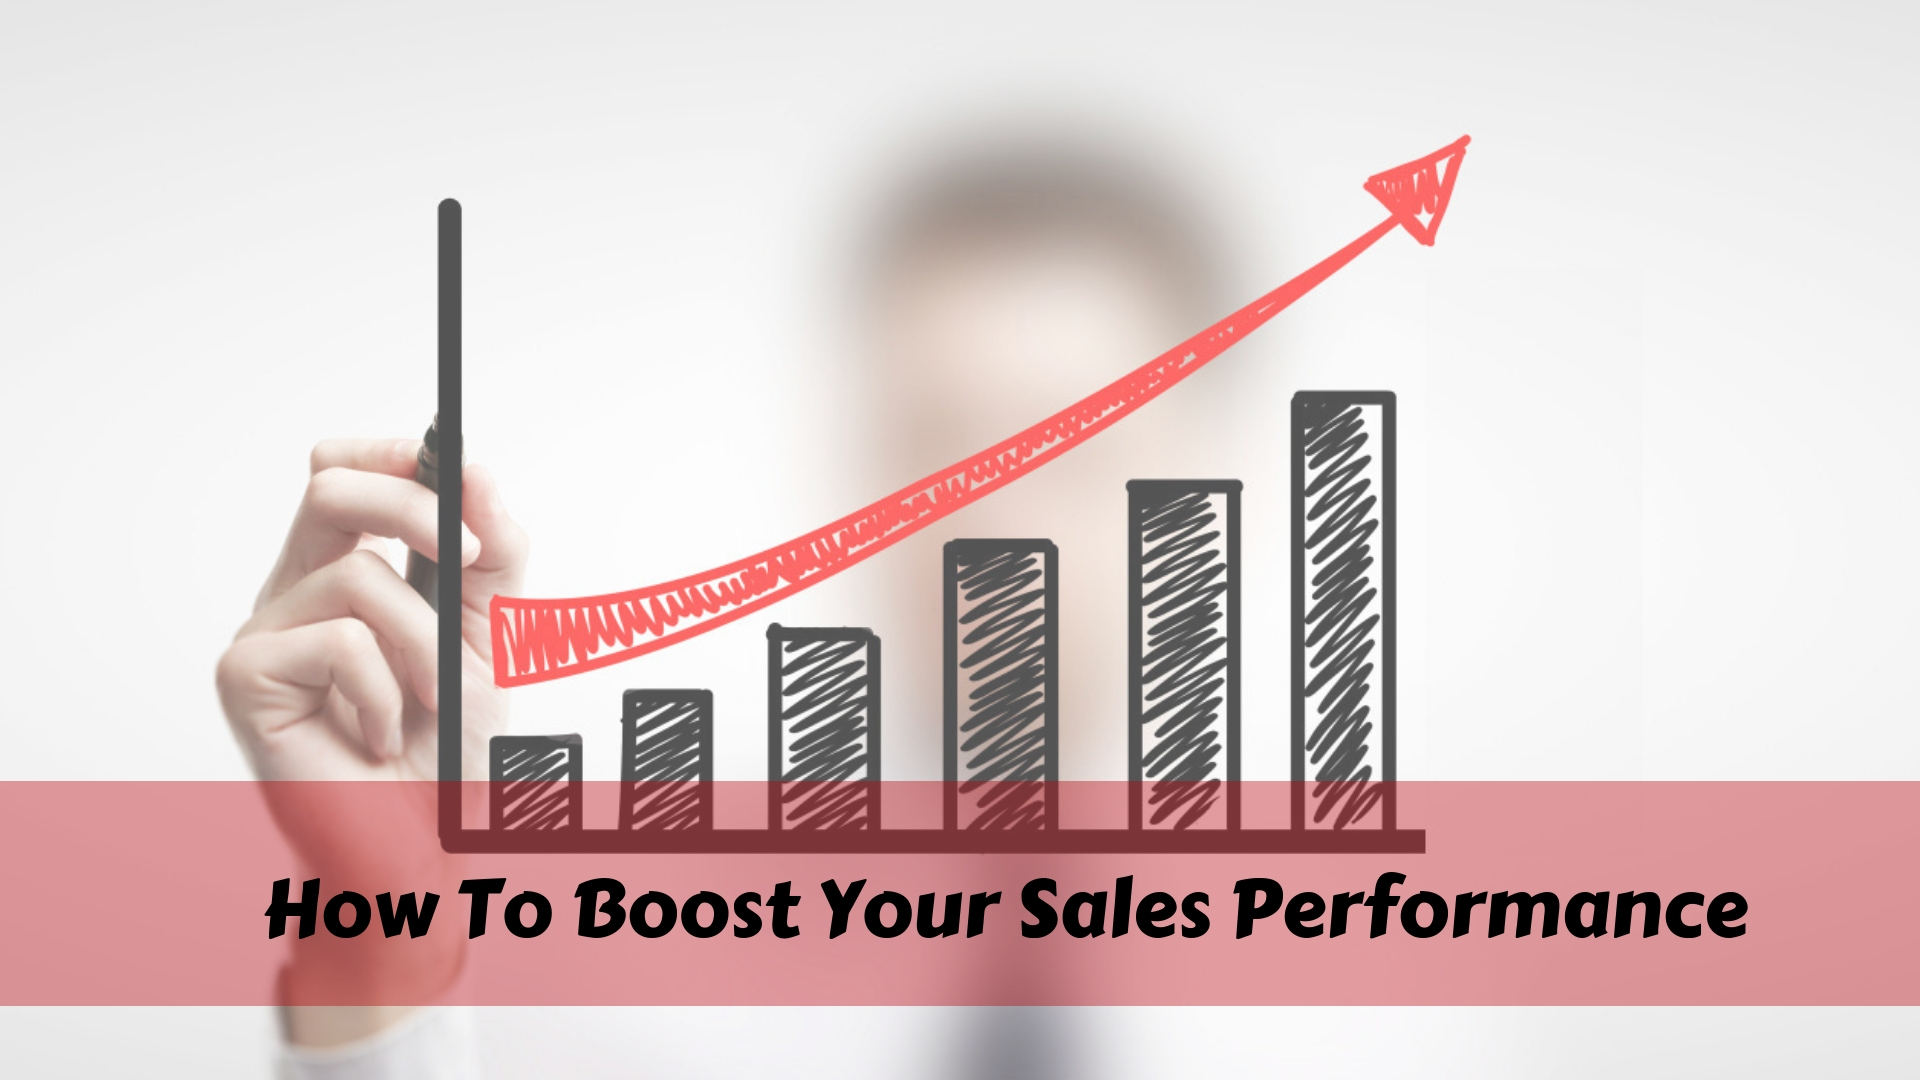 How To Boost Your Sales Performance?